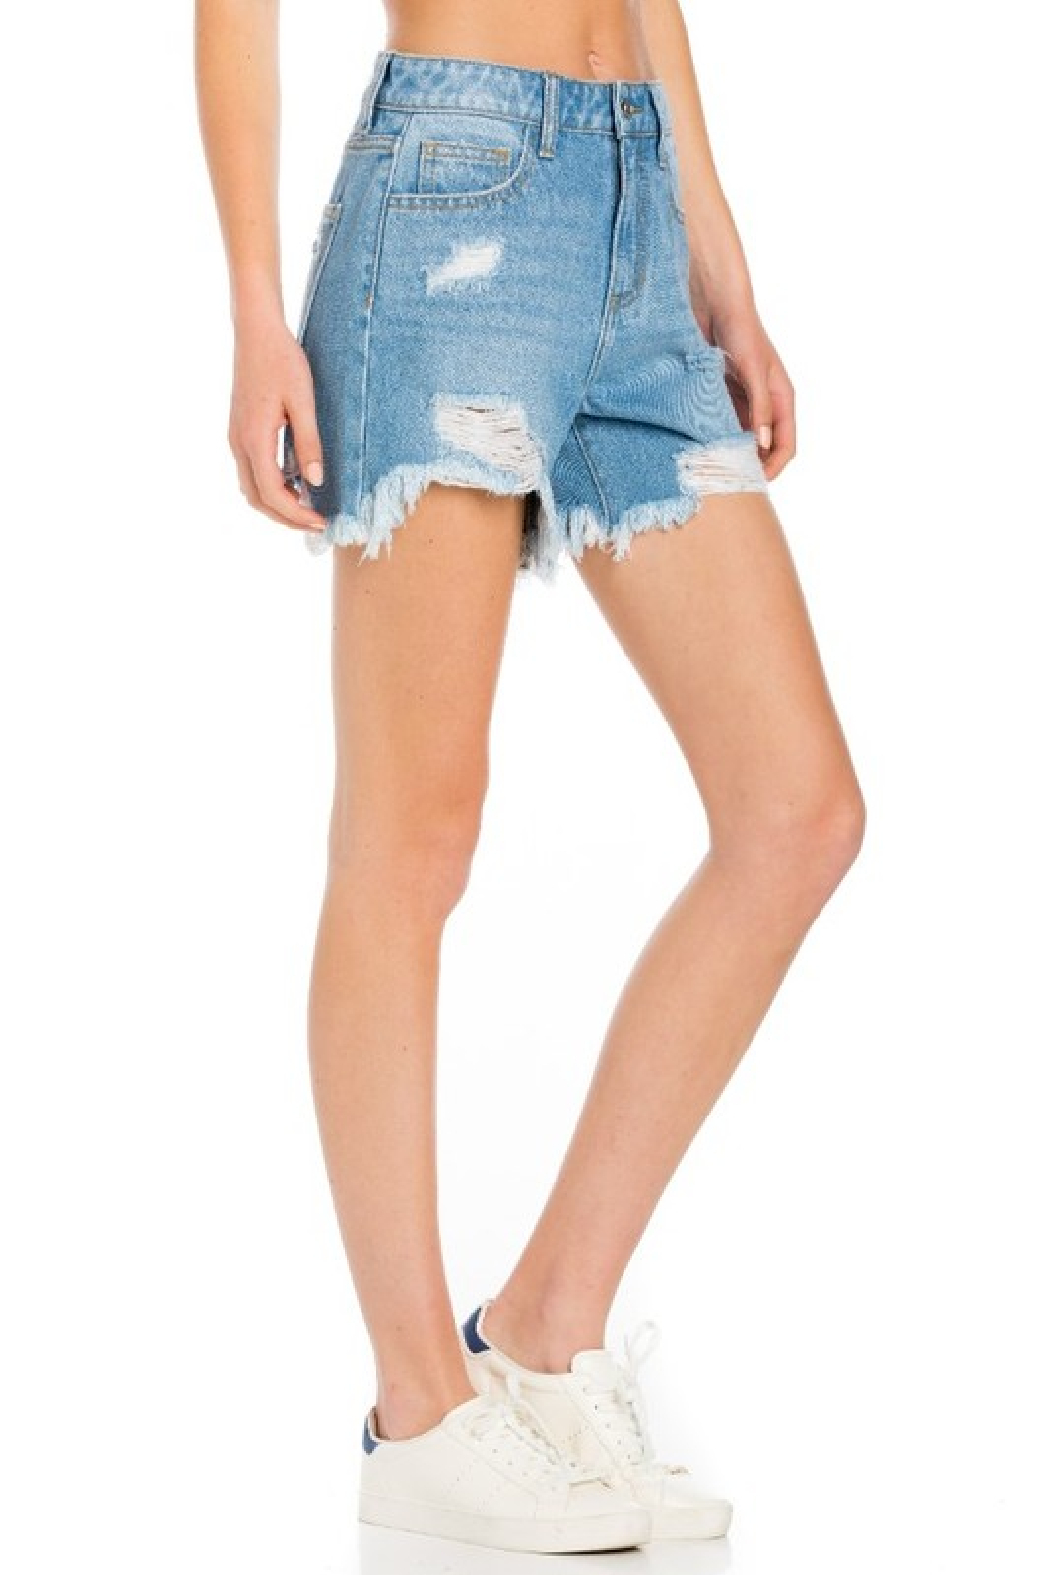 Cello Jeans High Rise Destroyed Shorts - Back Cropped Image